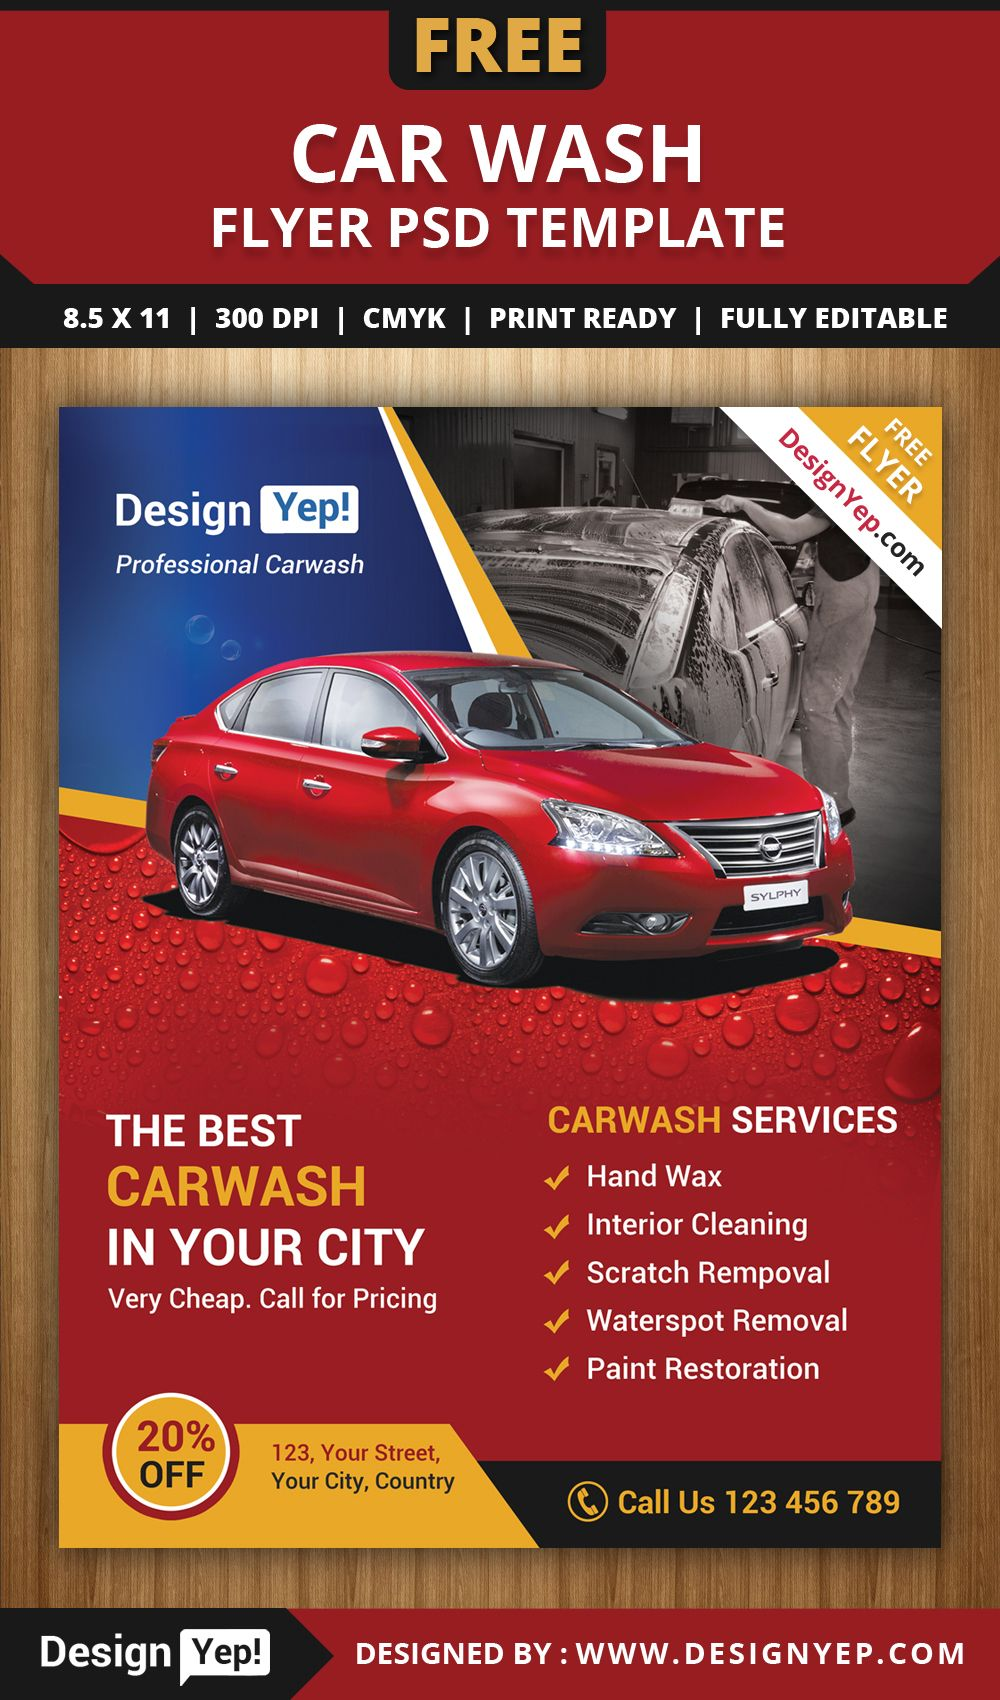 Free Car Wash Flyer Psd Template 3232 Designyep Car Wash